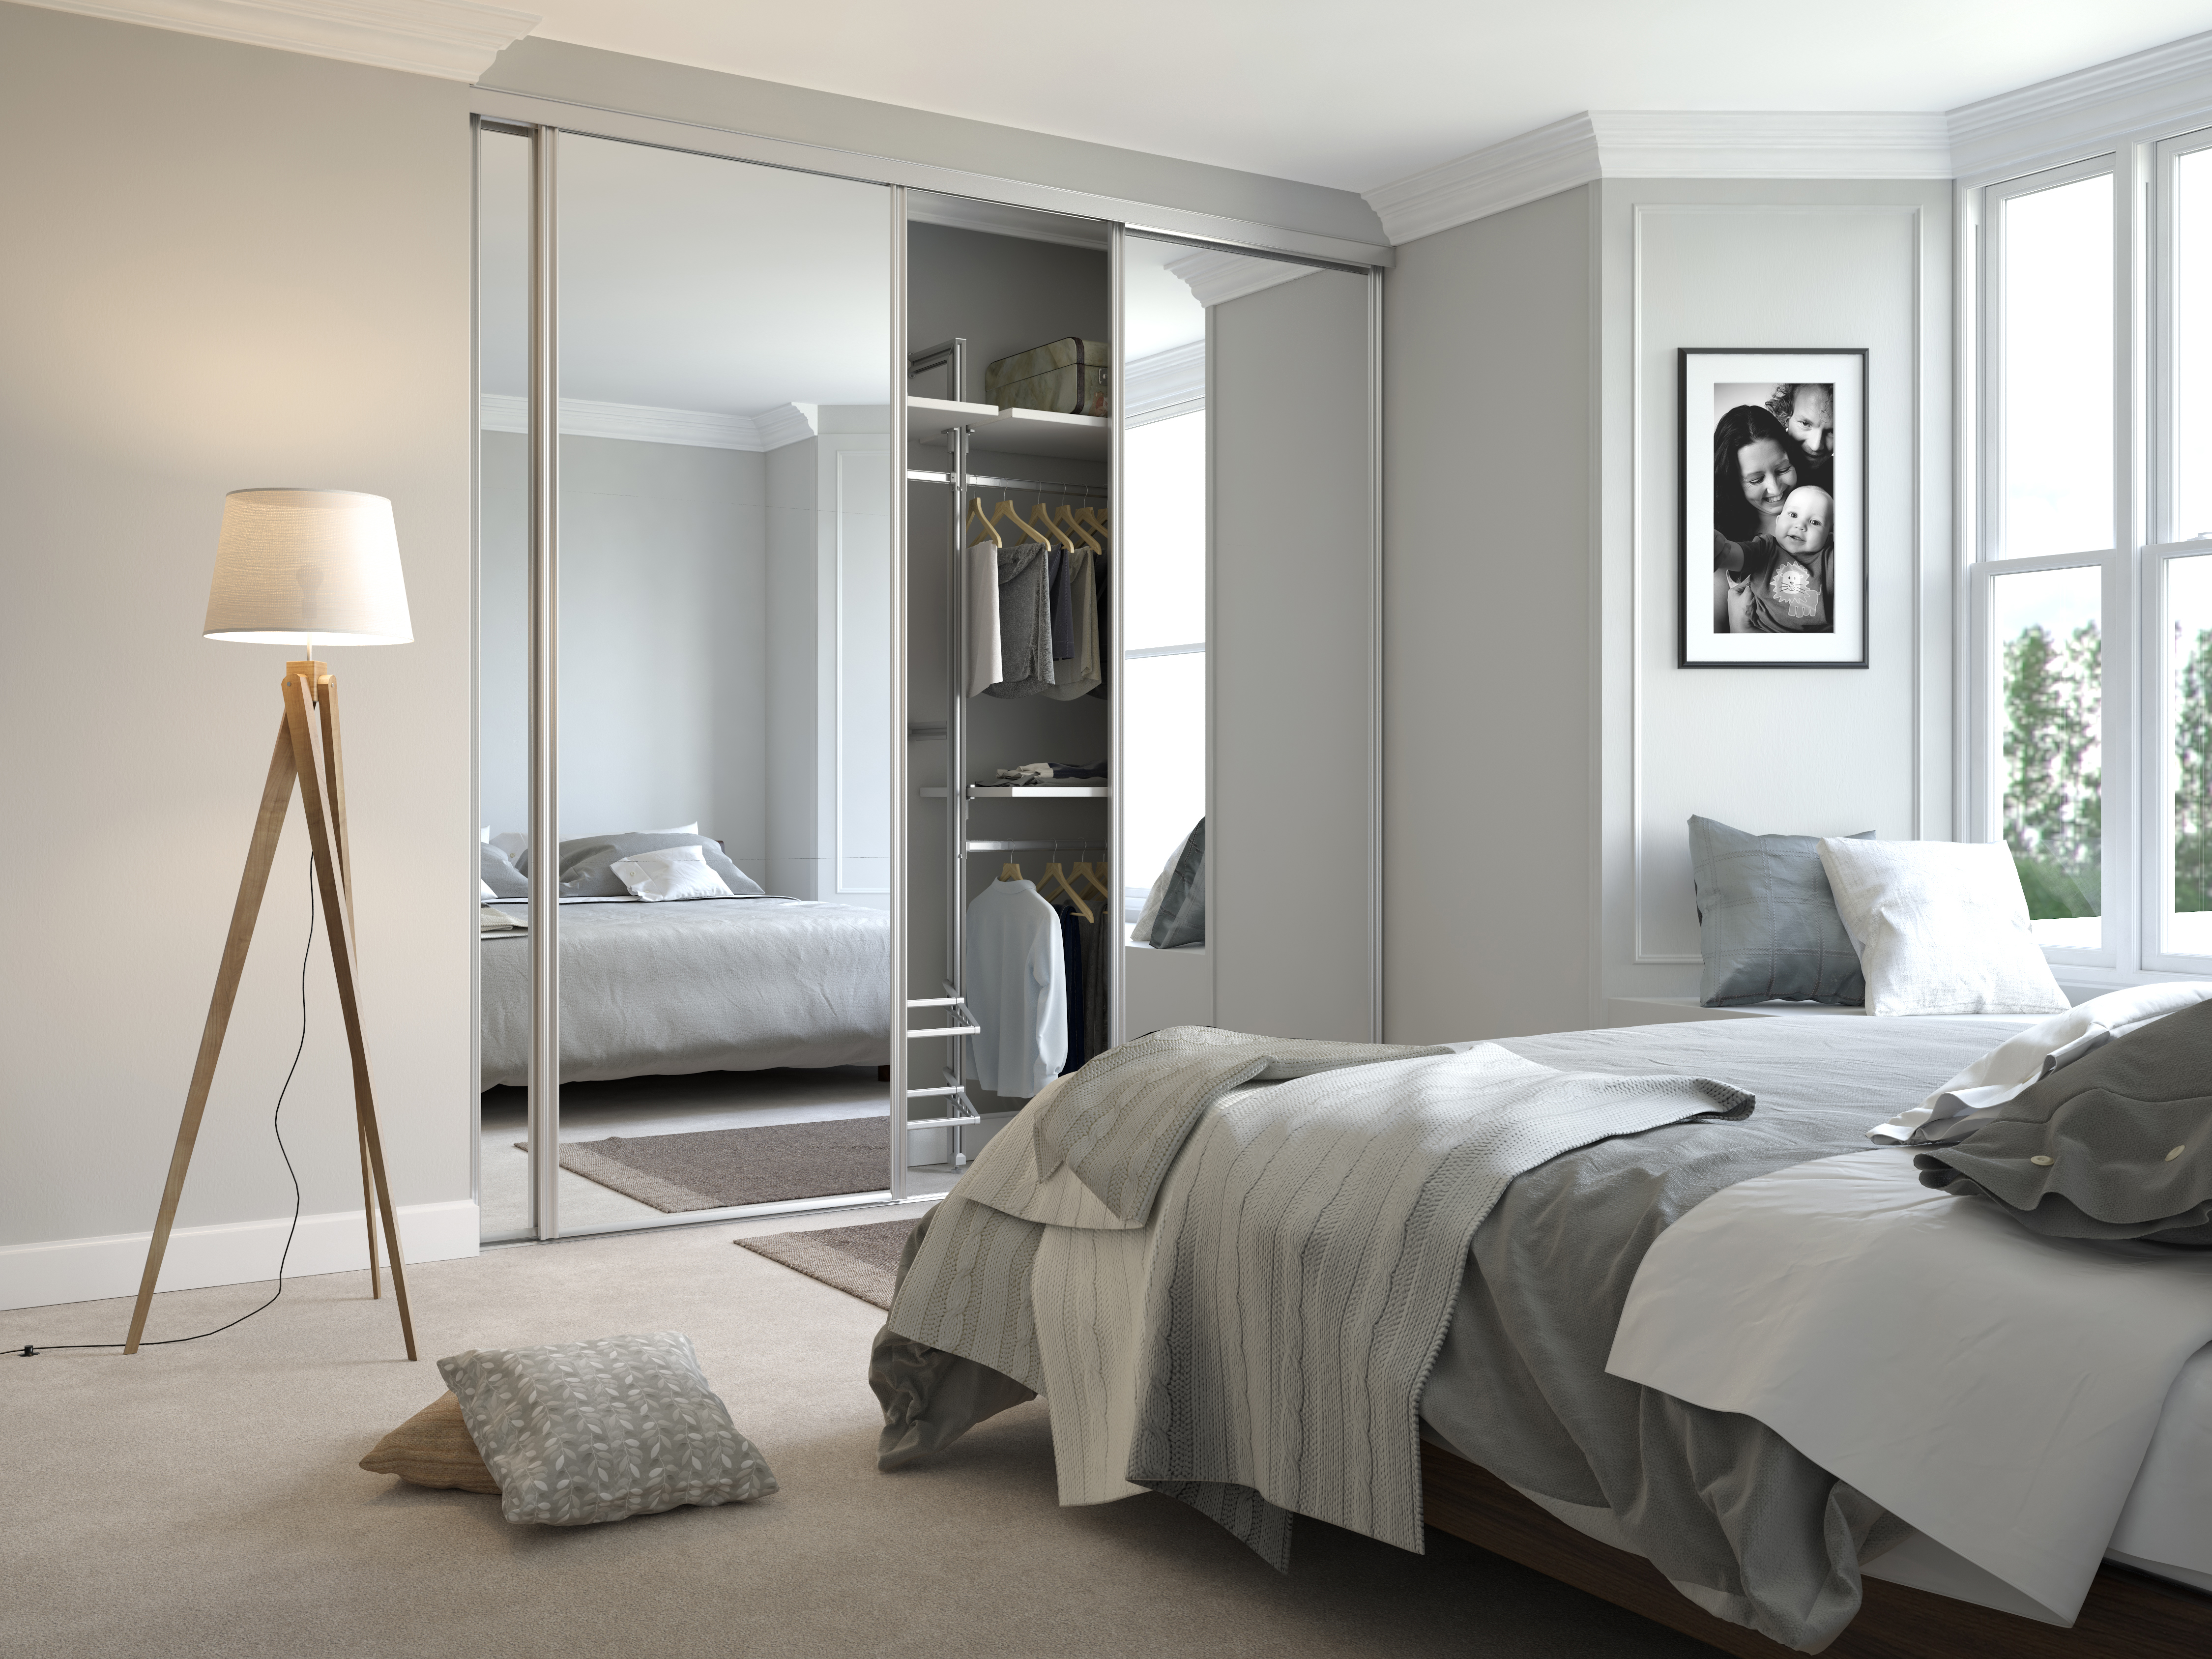 Decorate A Small Bedroom: Making The Most Of A Box Room